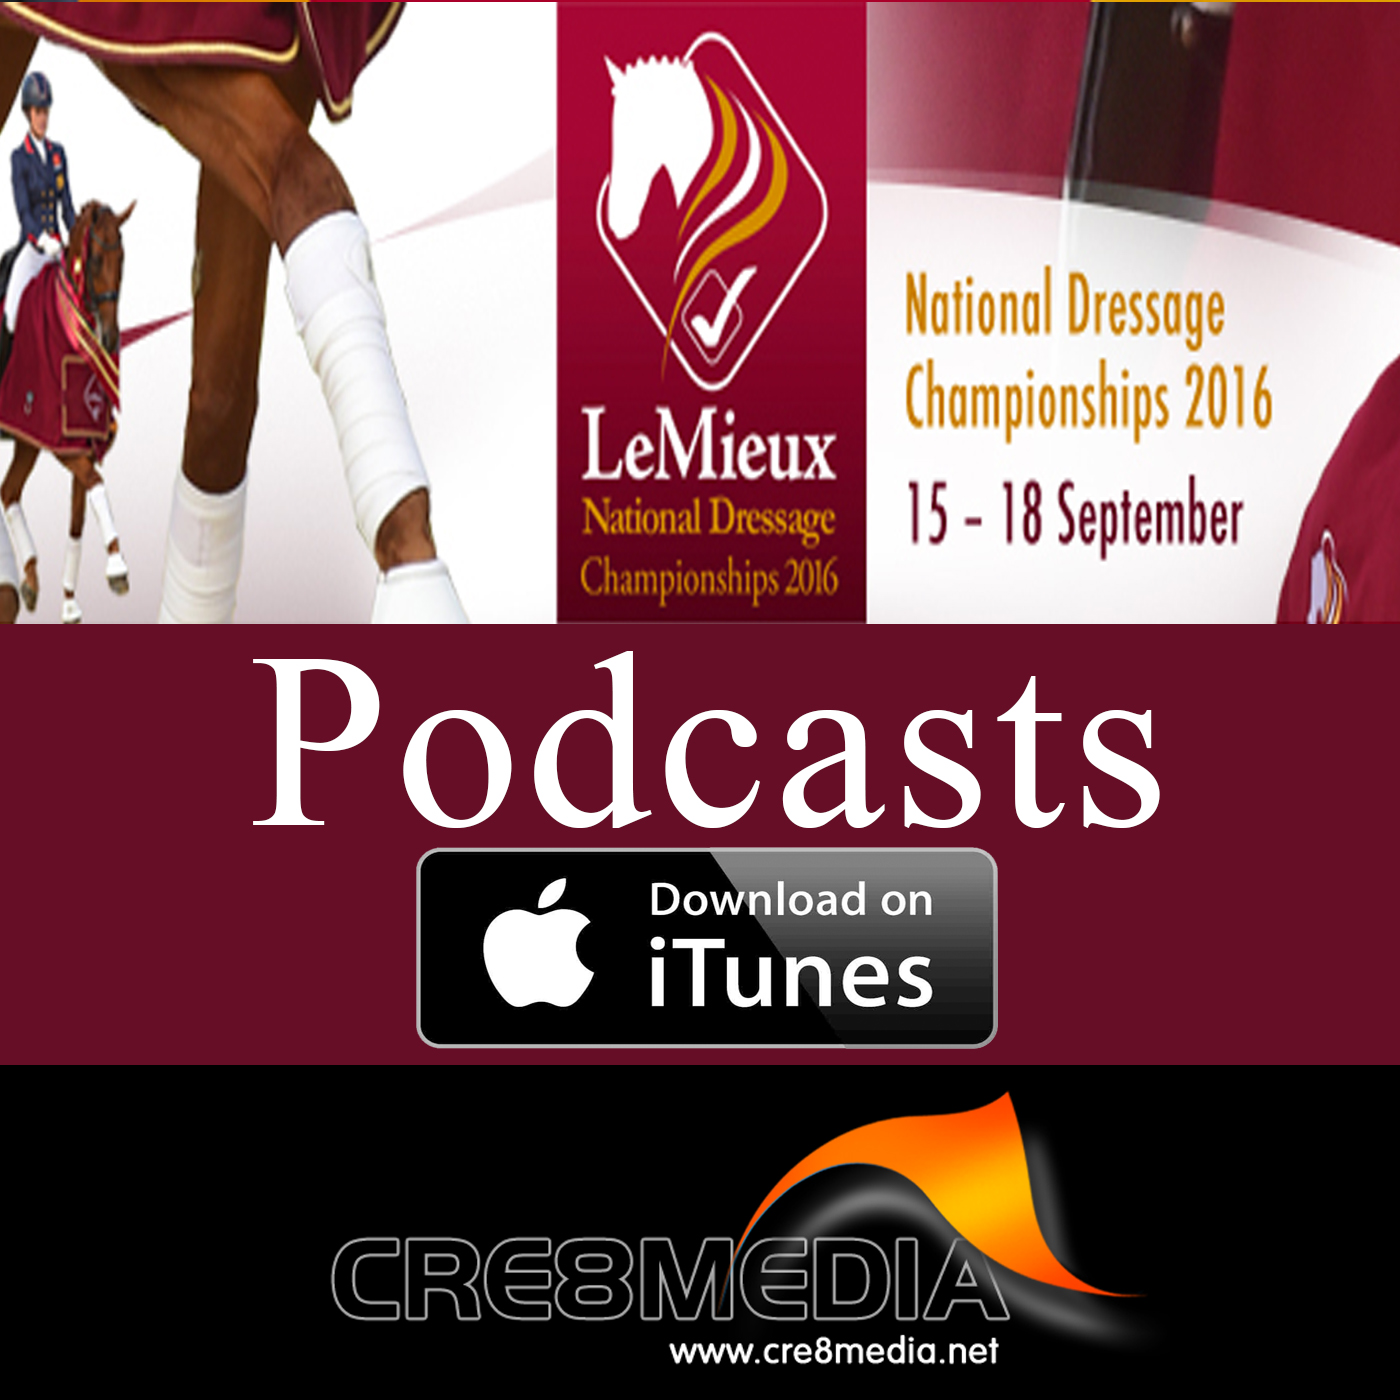 LeMieux National Dressage Championships 15 - 18 September 2016